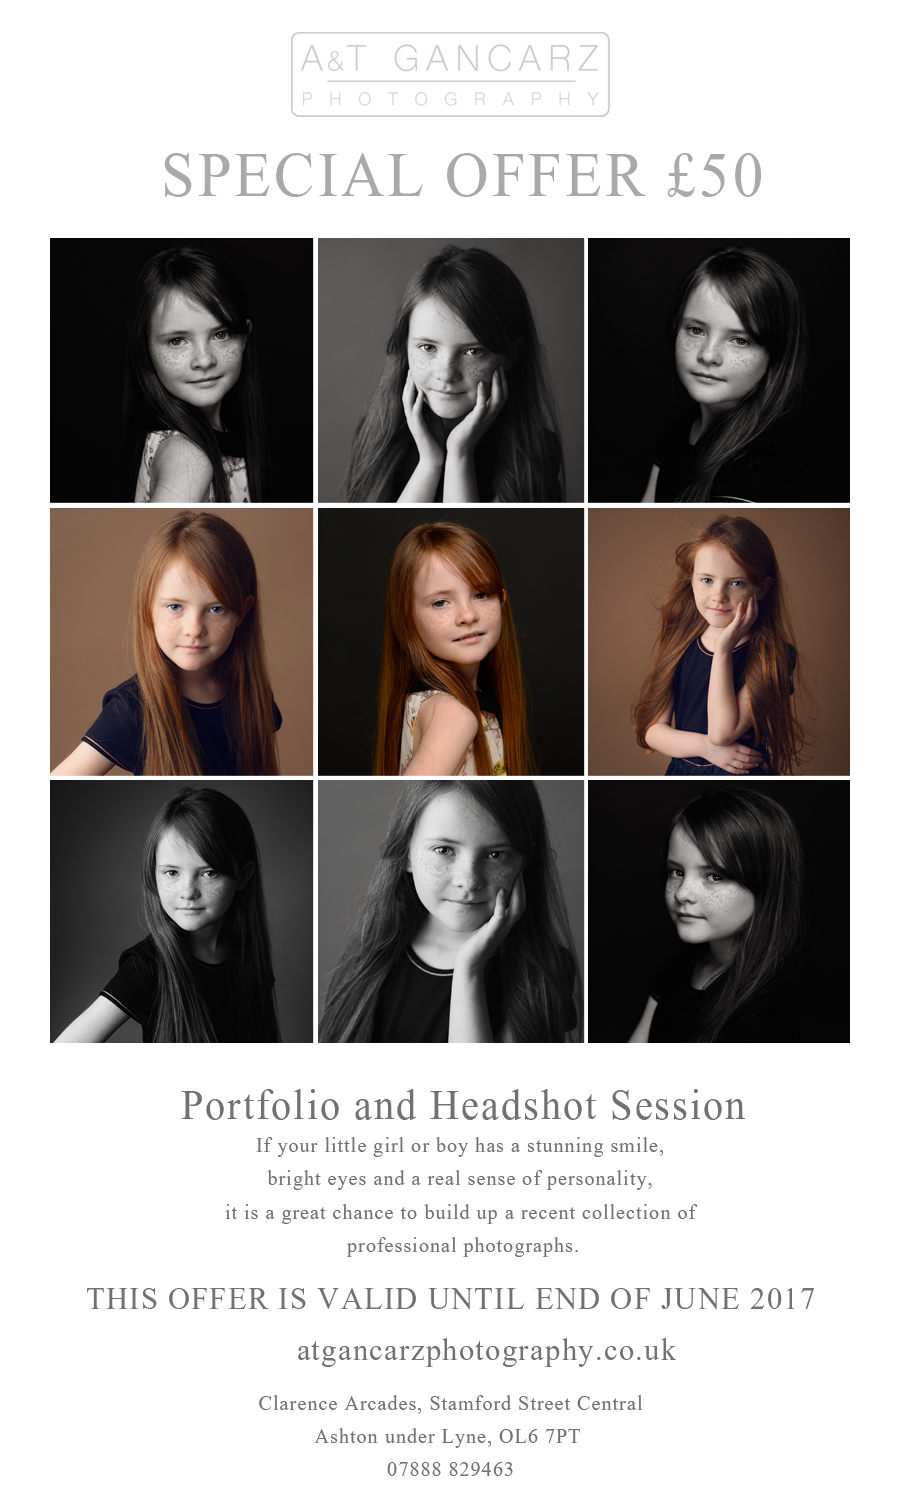 portfolio and headshot session, modelling portfolio, headshot session, special offer